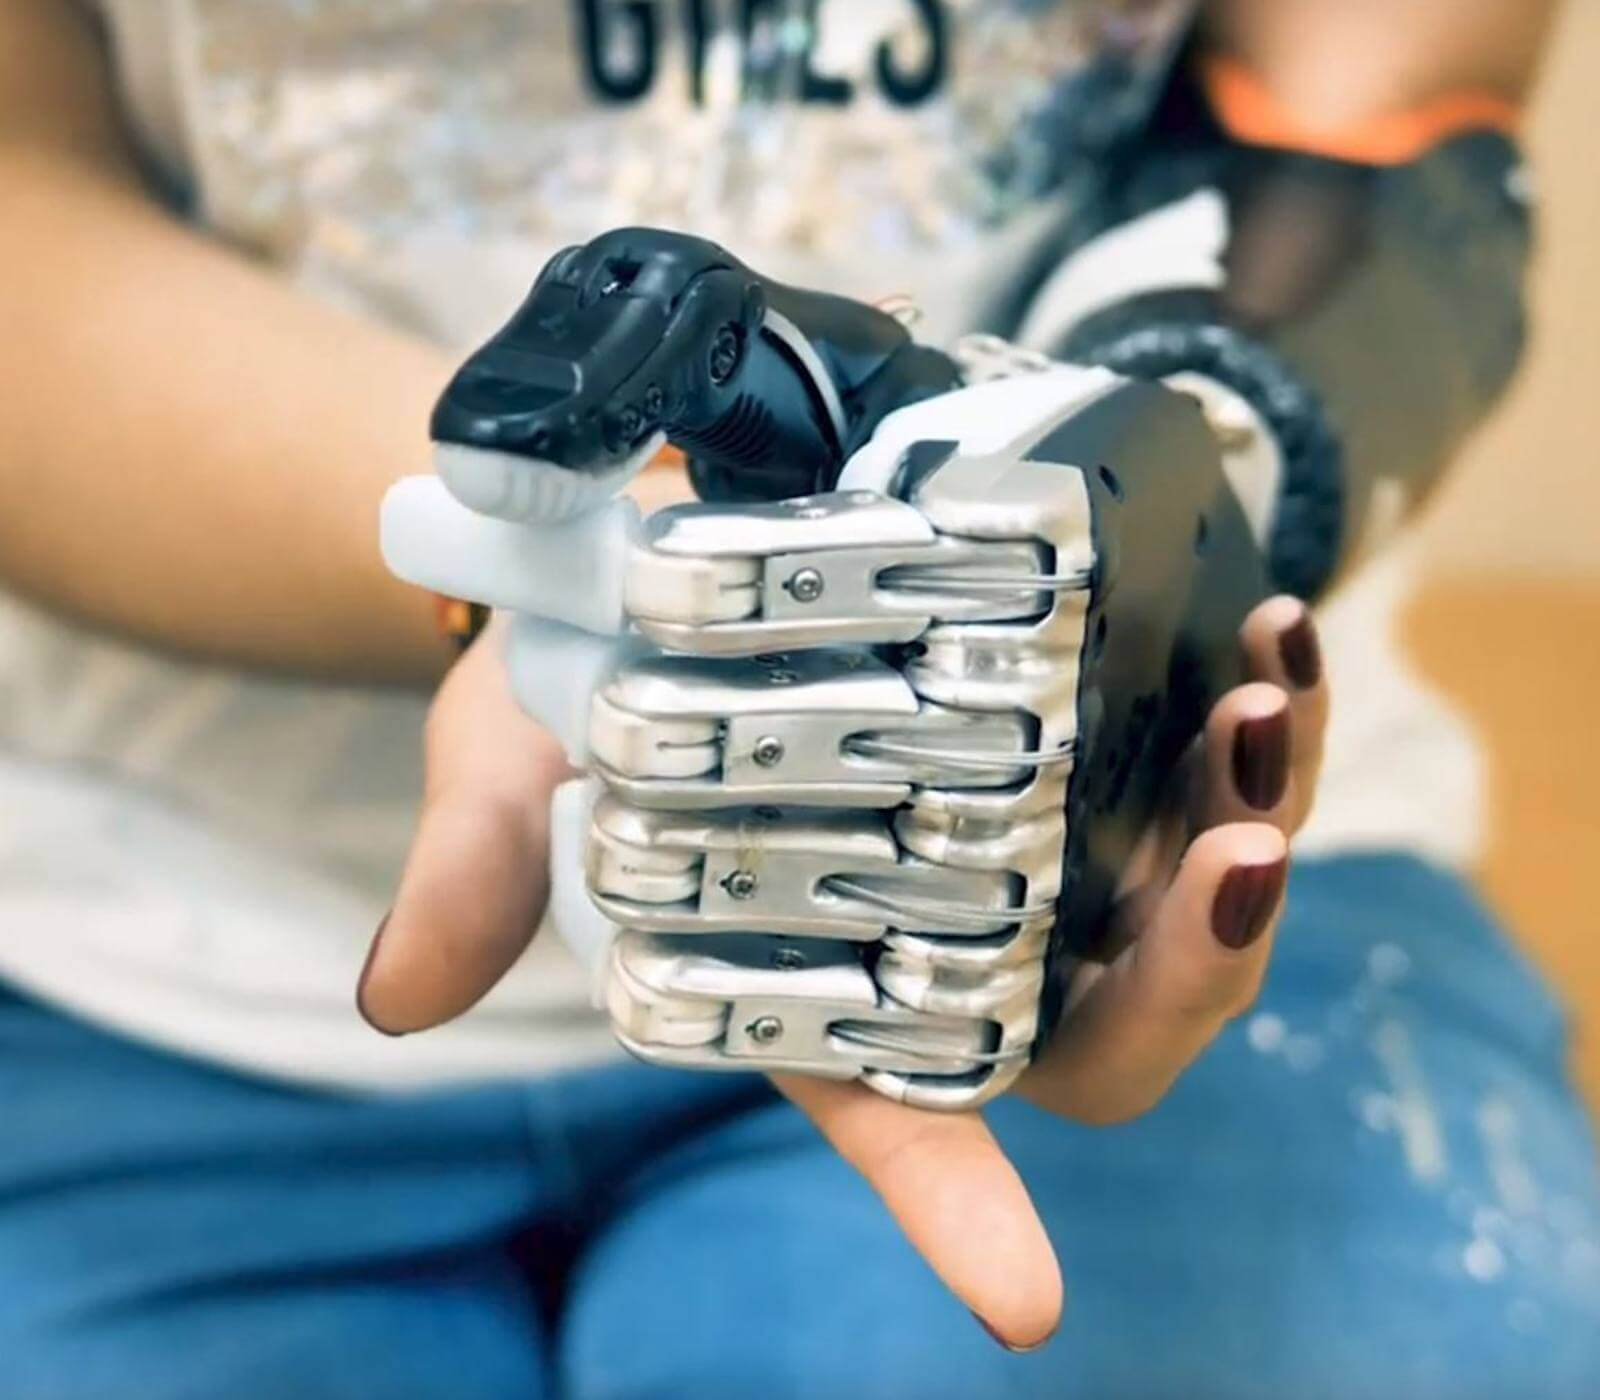 artificial intelligence robot arm